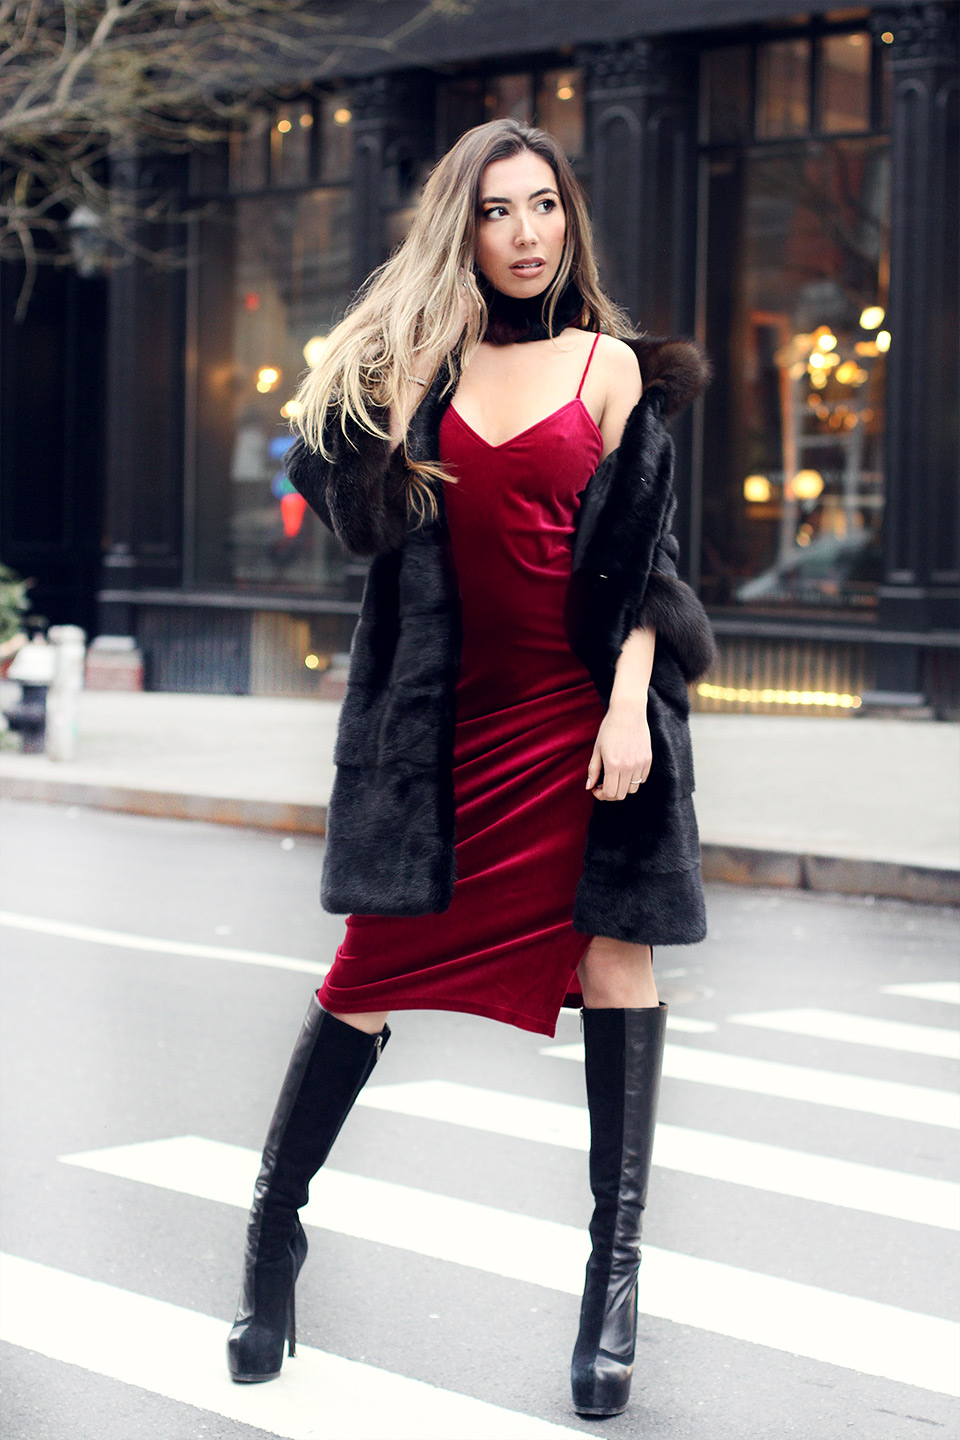 Zaful Valentine's Day Look